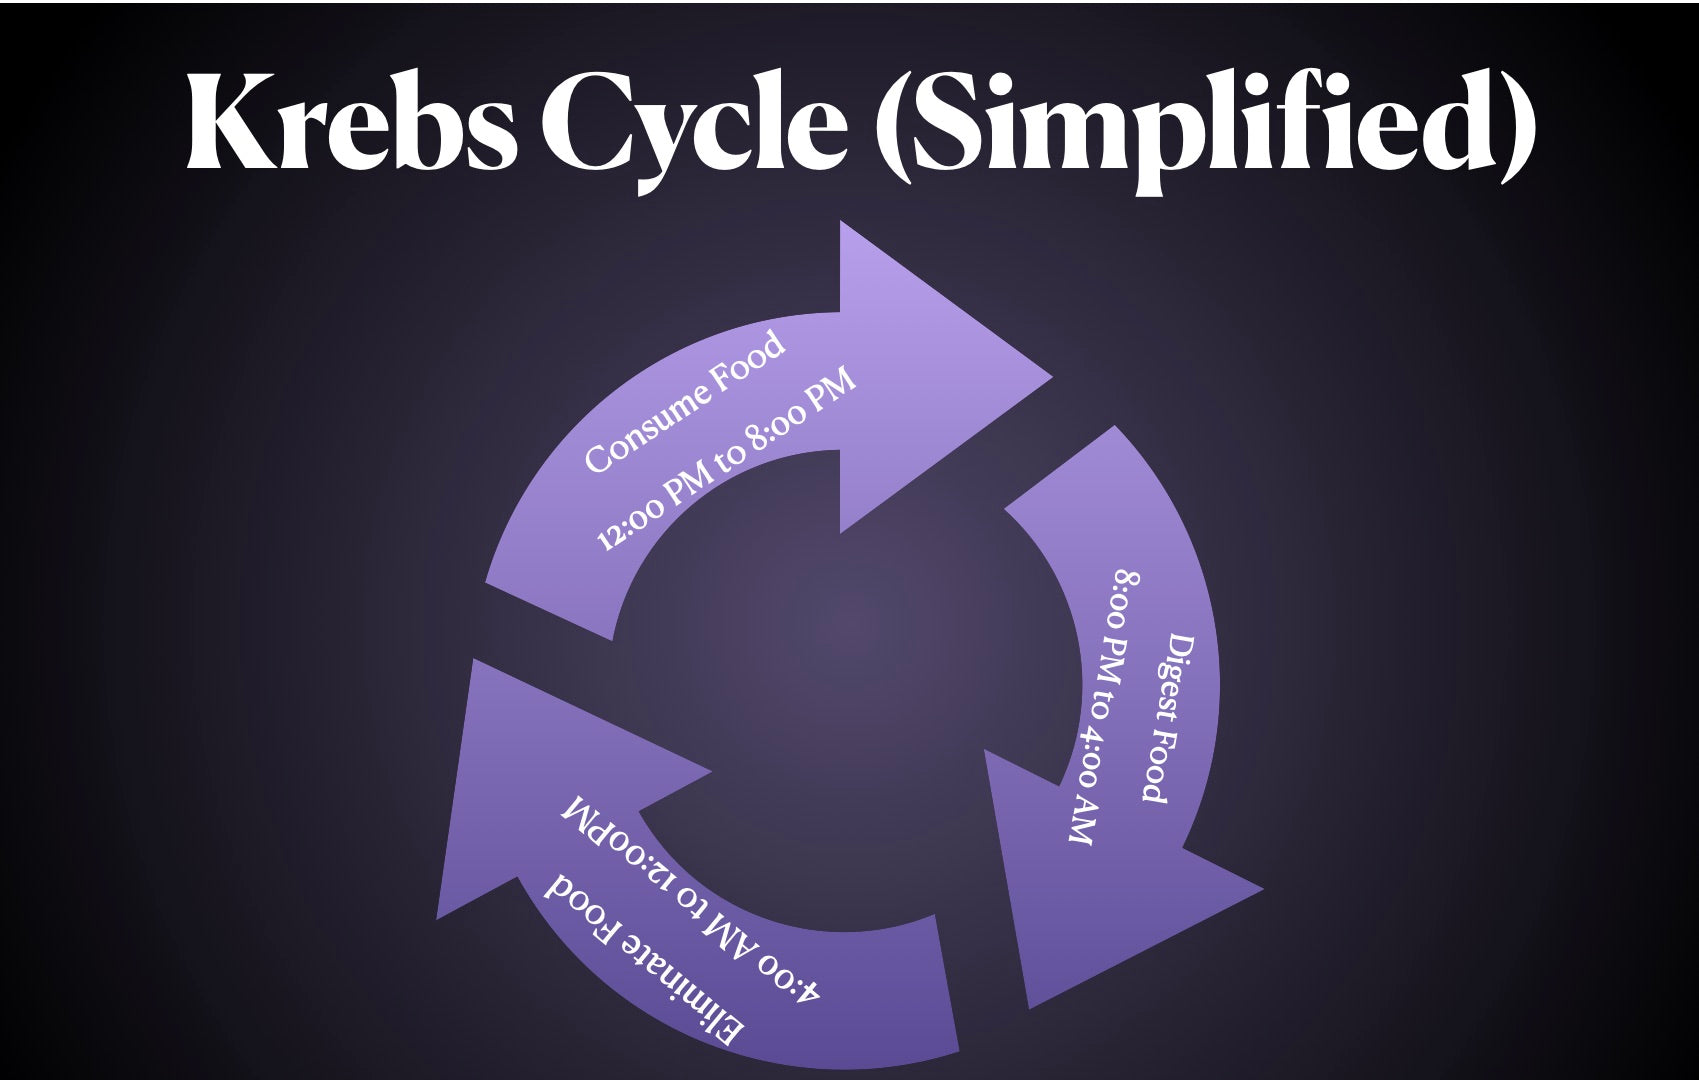 Krebs Cycle for digestion simplified.